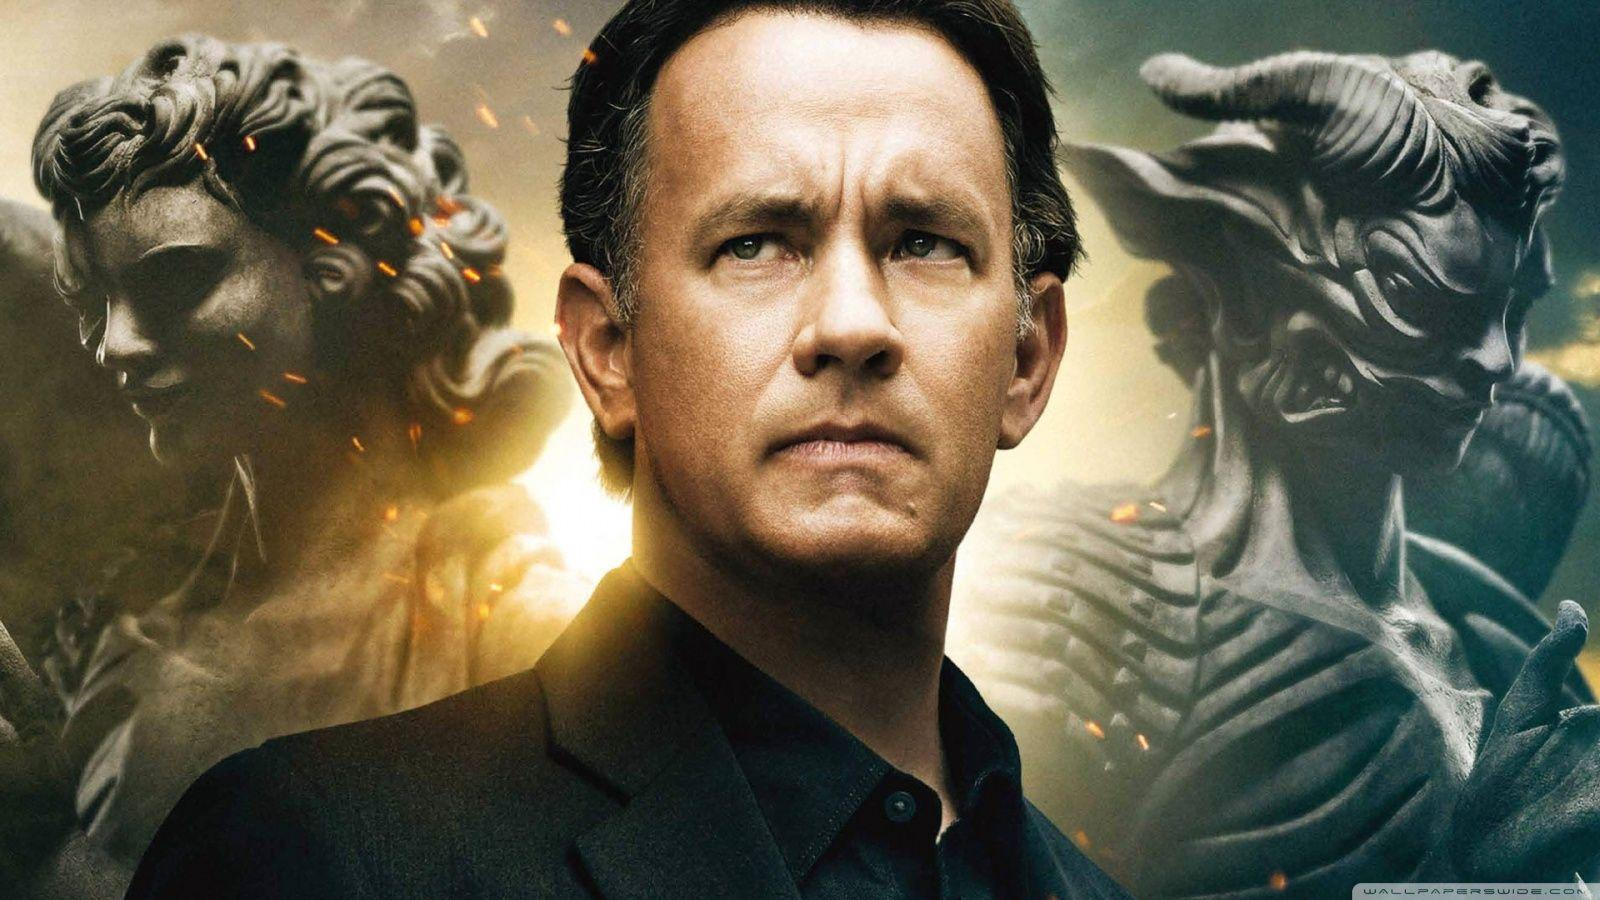 Tom Hanks Angels And Demons HD desktop wallpapers : High Definition